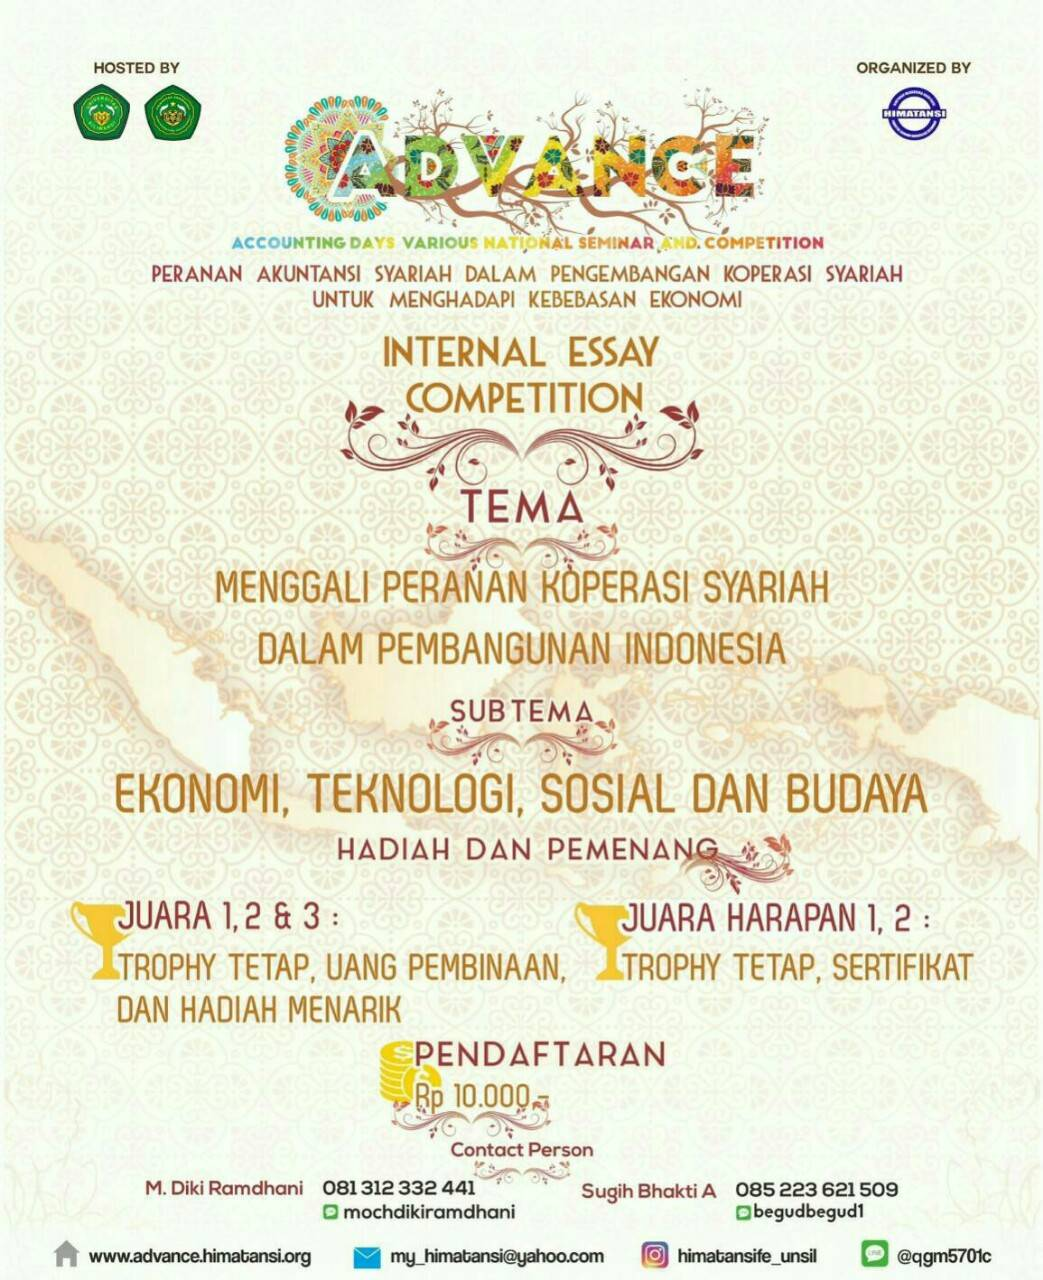 ADVANCE 2017 (INTERNAL ESSAY COMPETITION)